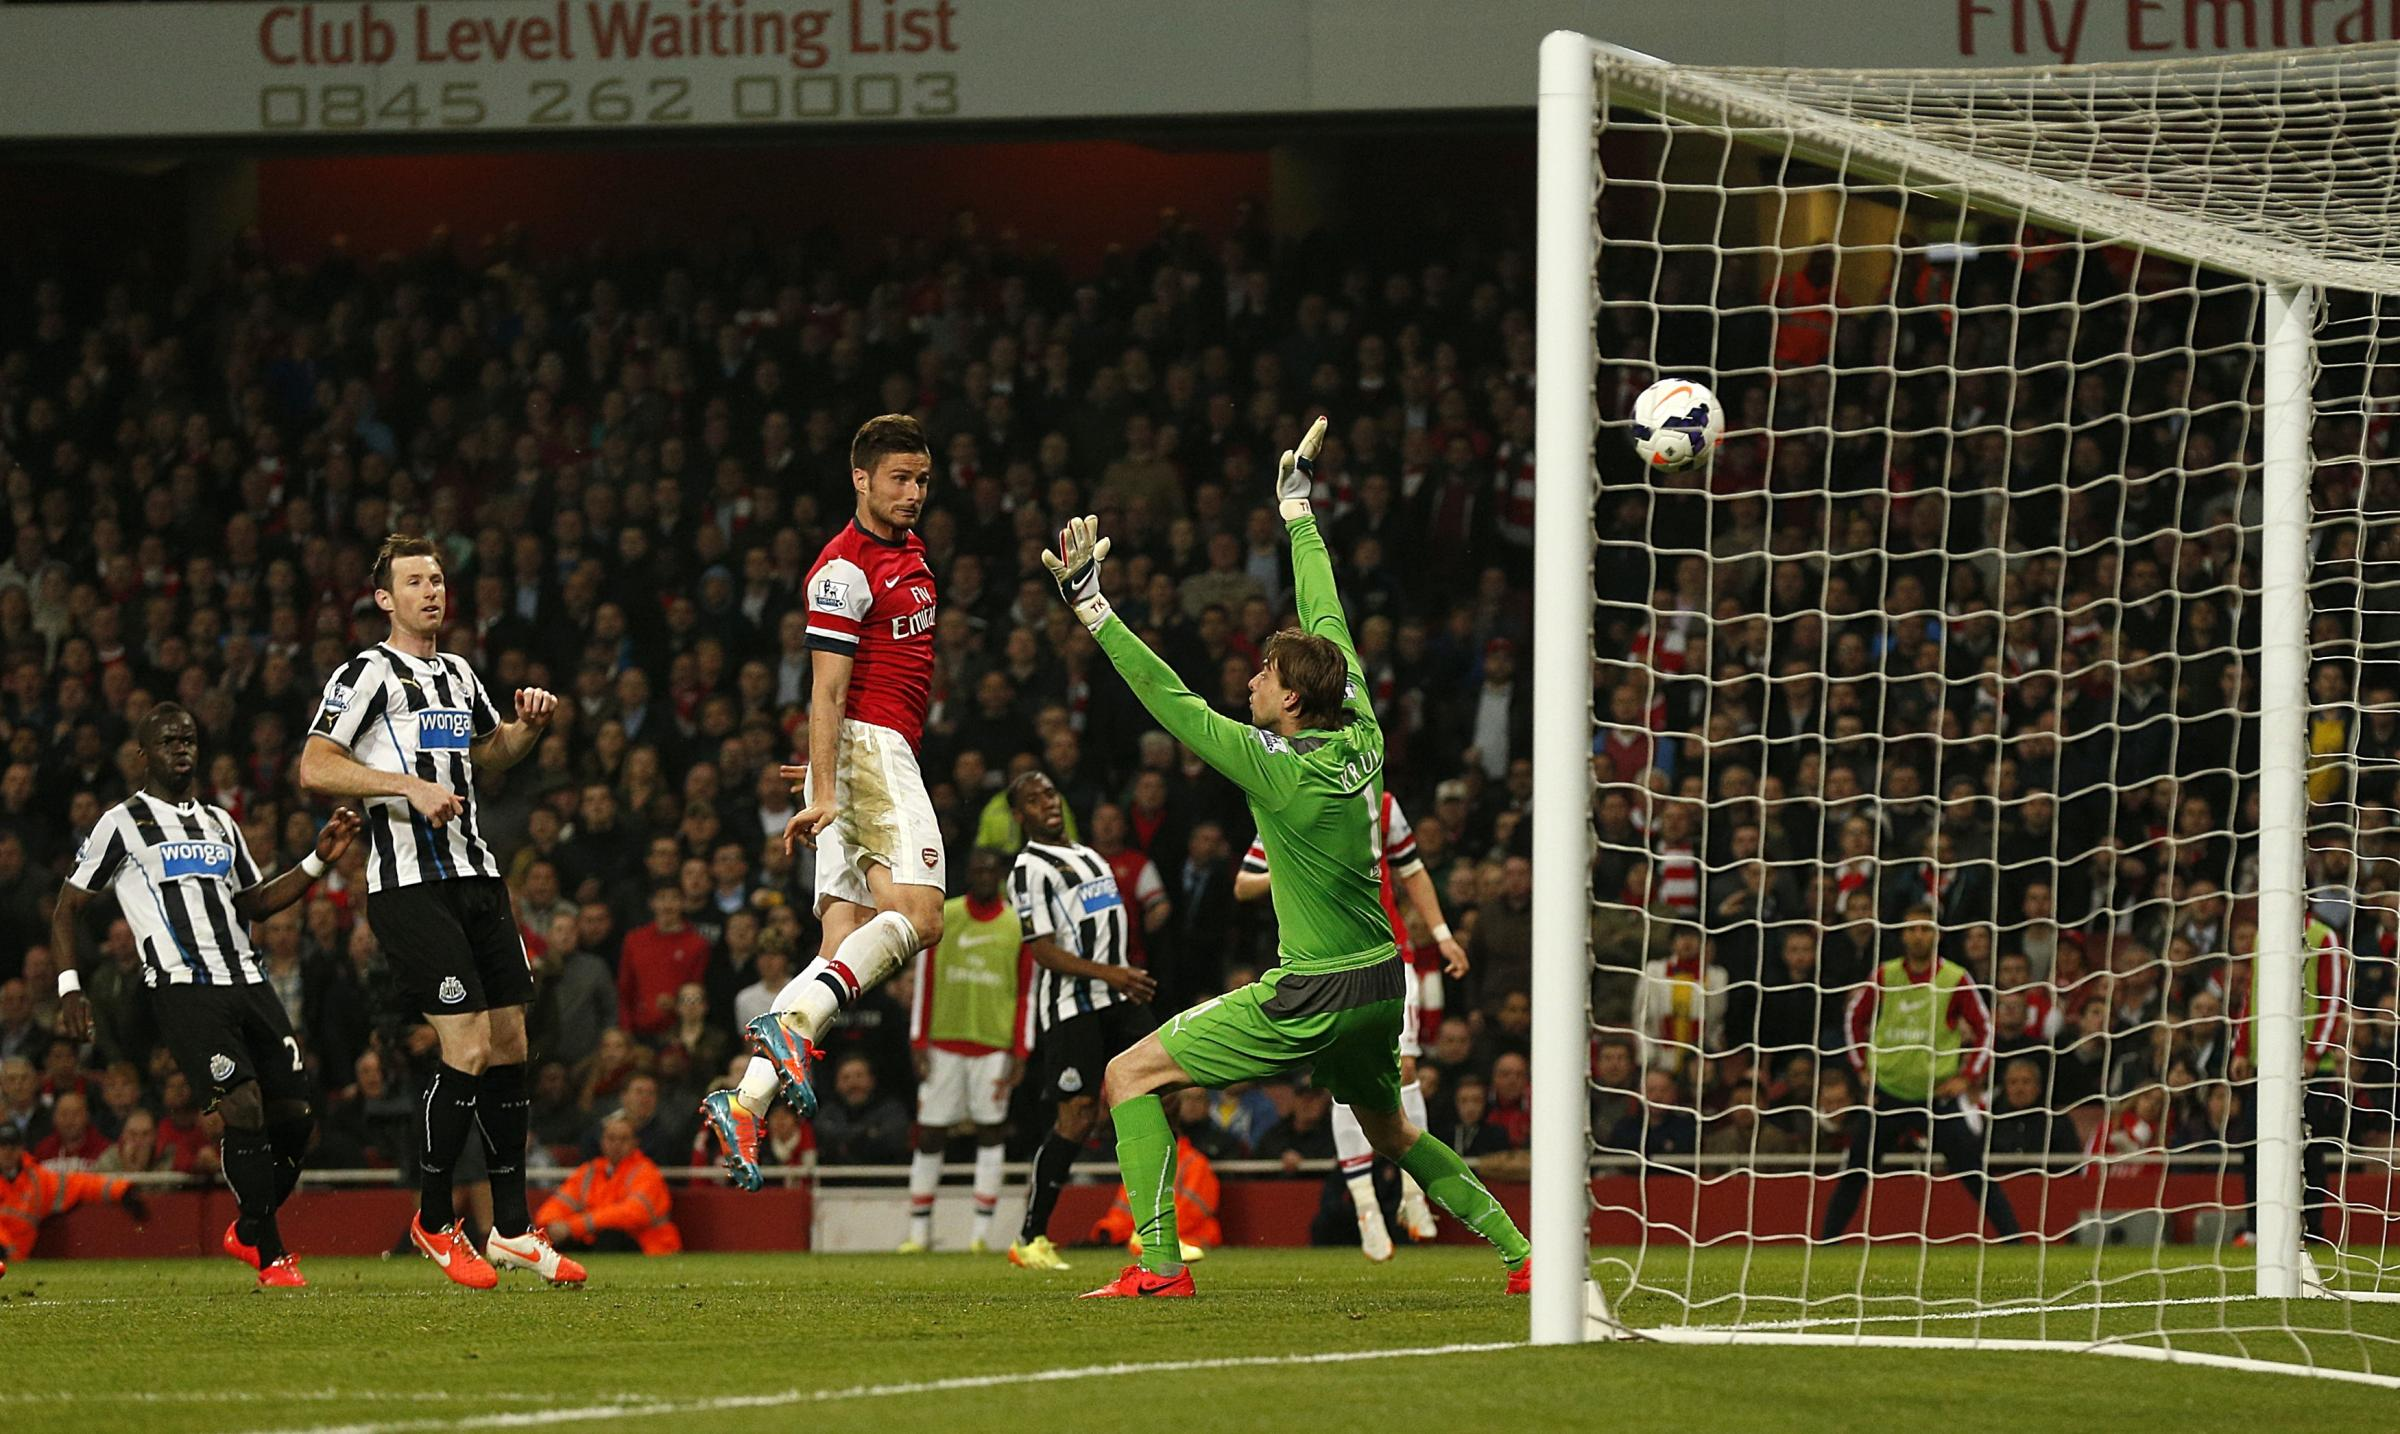 FREEDOM: Arsenal's Olivier Giroud scores his side's third goal of the game, heading in from close range as defender Mike Williamson stands off